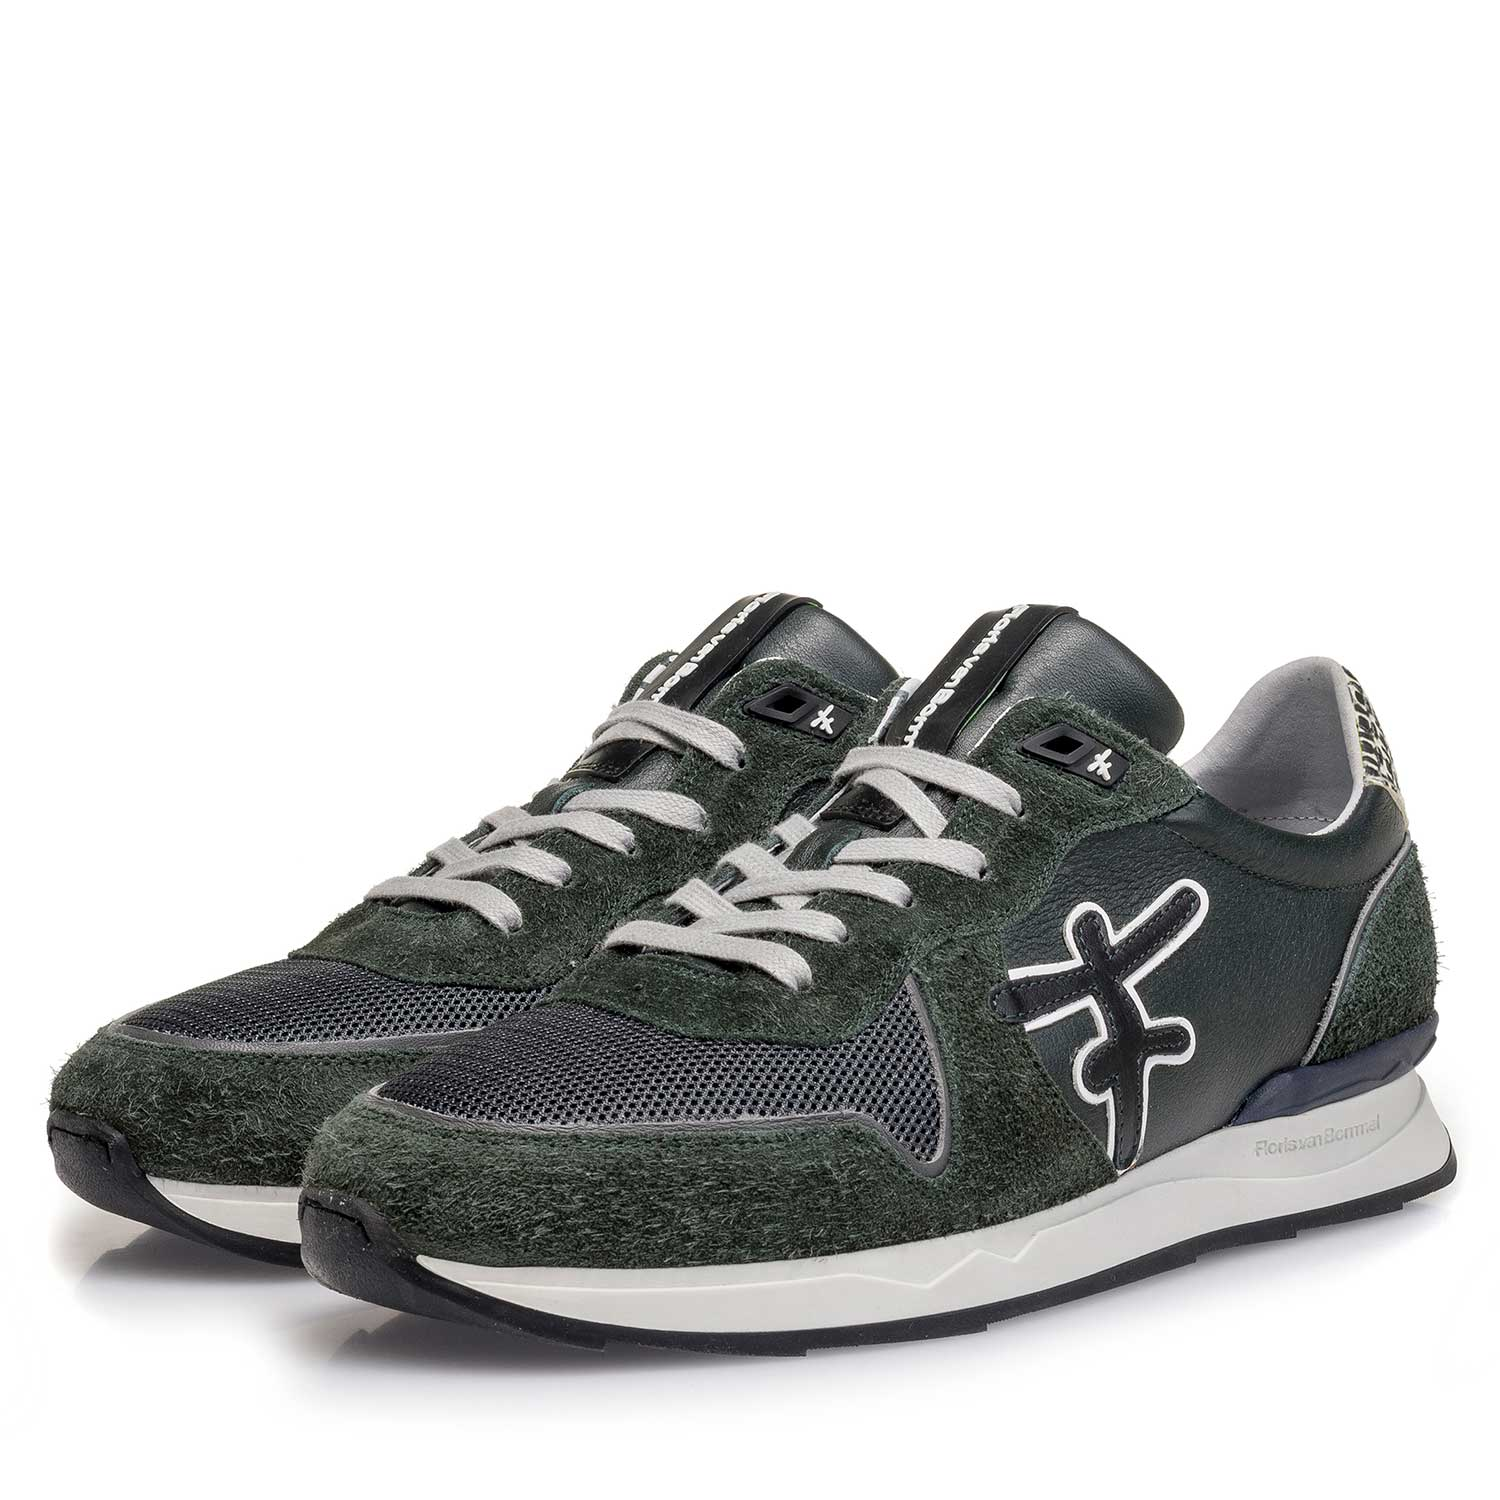 16246/08 - Dark green calf leather sneaker